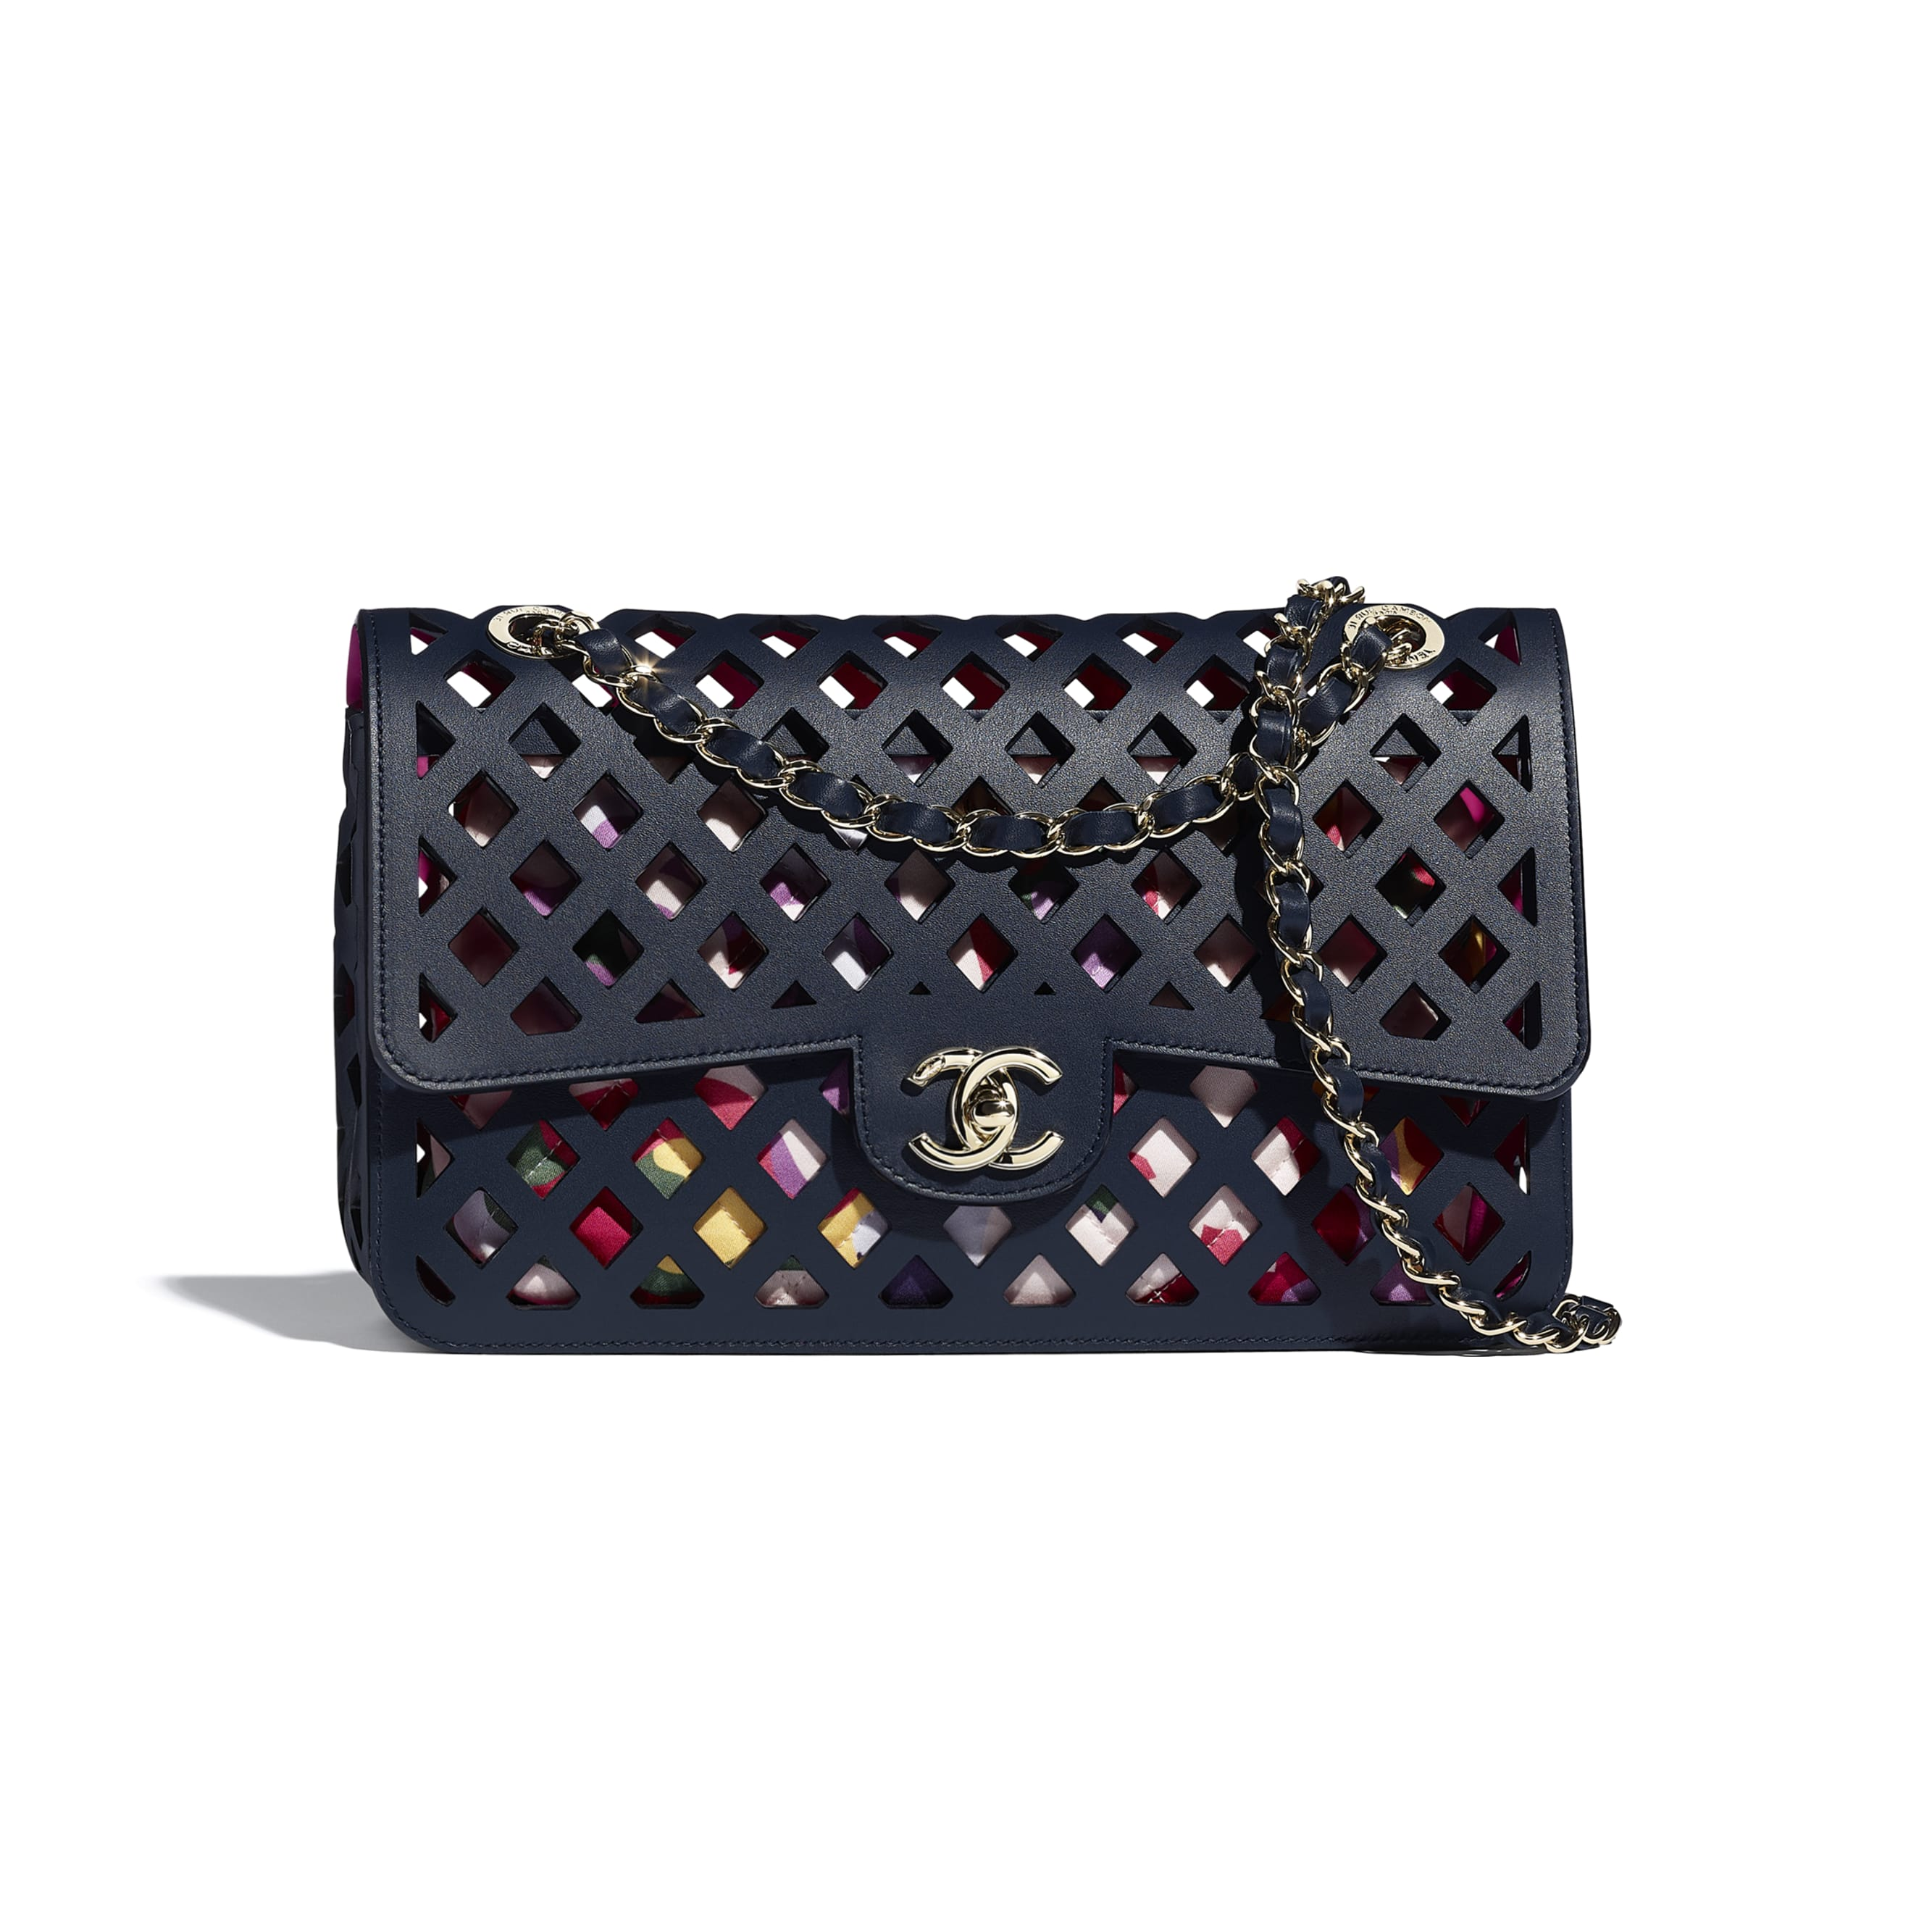 Large Flap Bag - Navy Blue - Perforated Calfskin, Printed Fabric & Gold-Tone Metal - CHANEL - Default view - see standard sized version